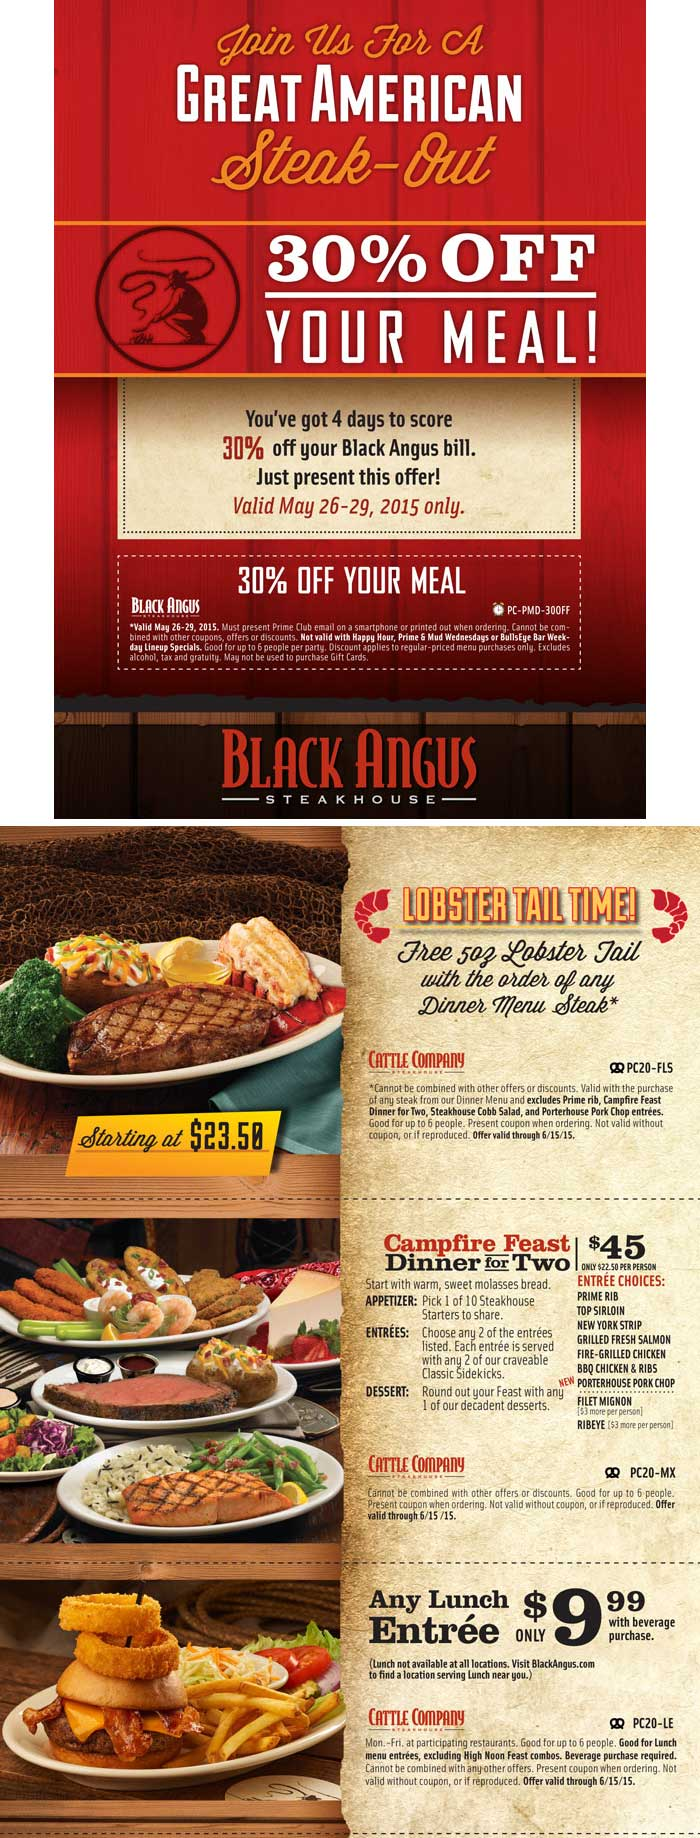 Black Angus Coupon January 2017 Free lobster with your steak, 30% off & more at Black Angus